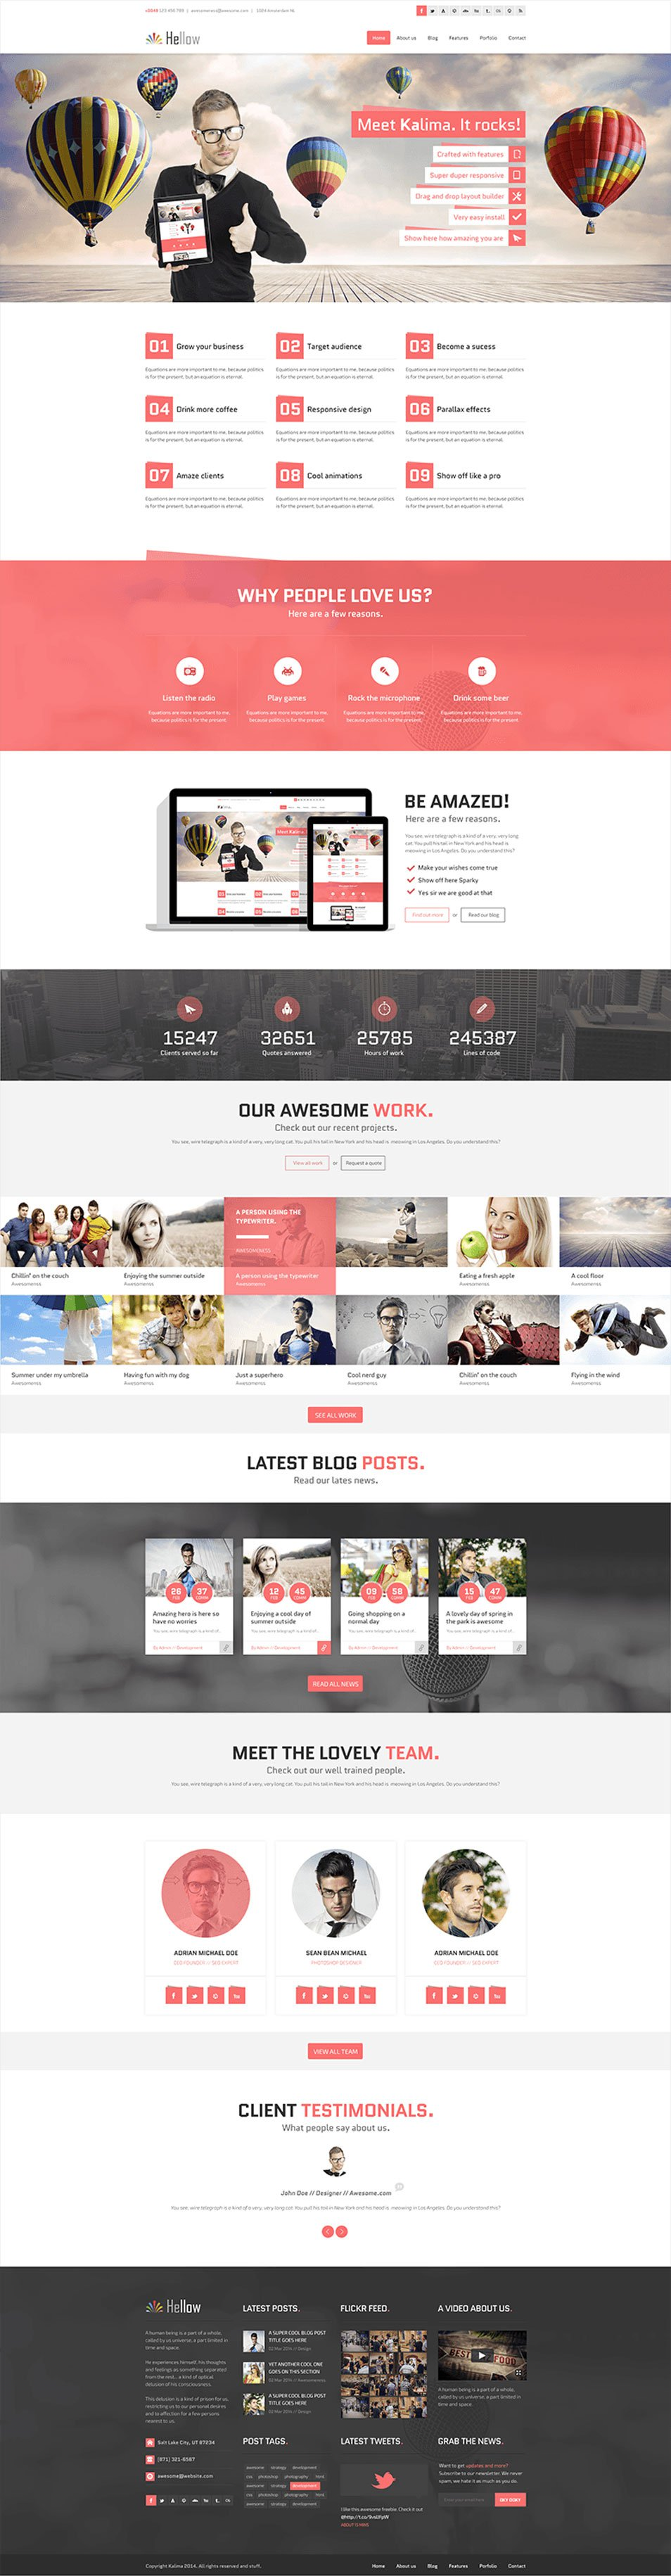 Hellow free psd template web templates pinterest psd templates hellow free psd template flashek Image collections